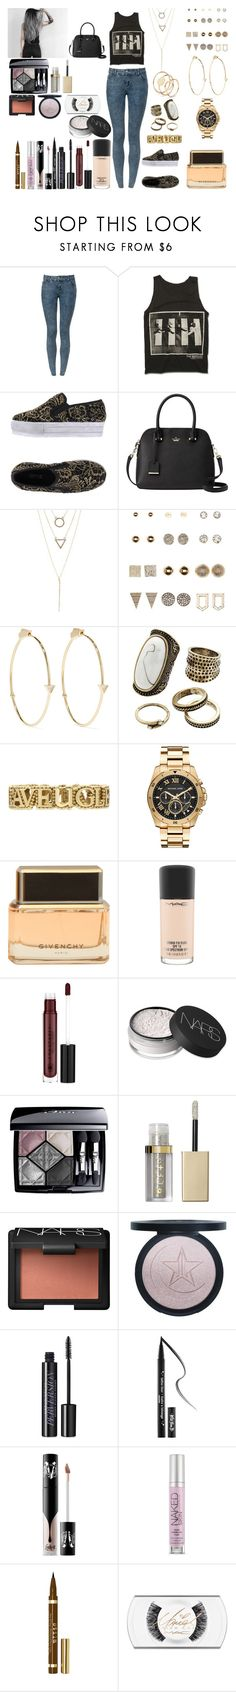 """""""Untitled #992"""" by asiebenthaler ❤ liked on Polyvore featuring Colors Of California, Kate Spade, Charlotte Russe, Jennifer Meyer Jewelry, Gemma Simone, Gucci, Michael Kors, Givenchy, MAC Cosmetics and Anastasia Beverly Hills"""